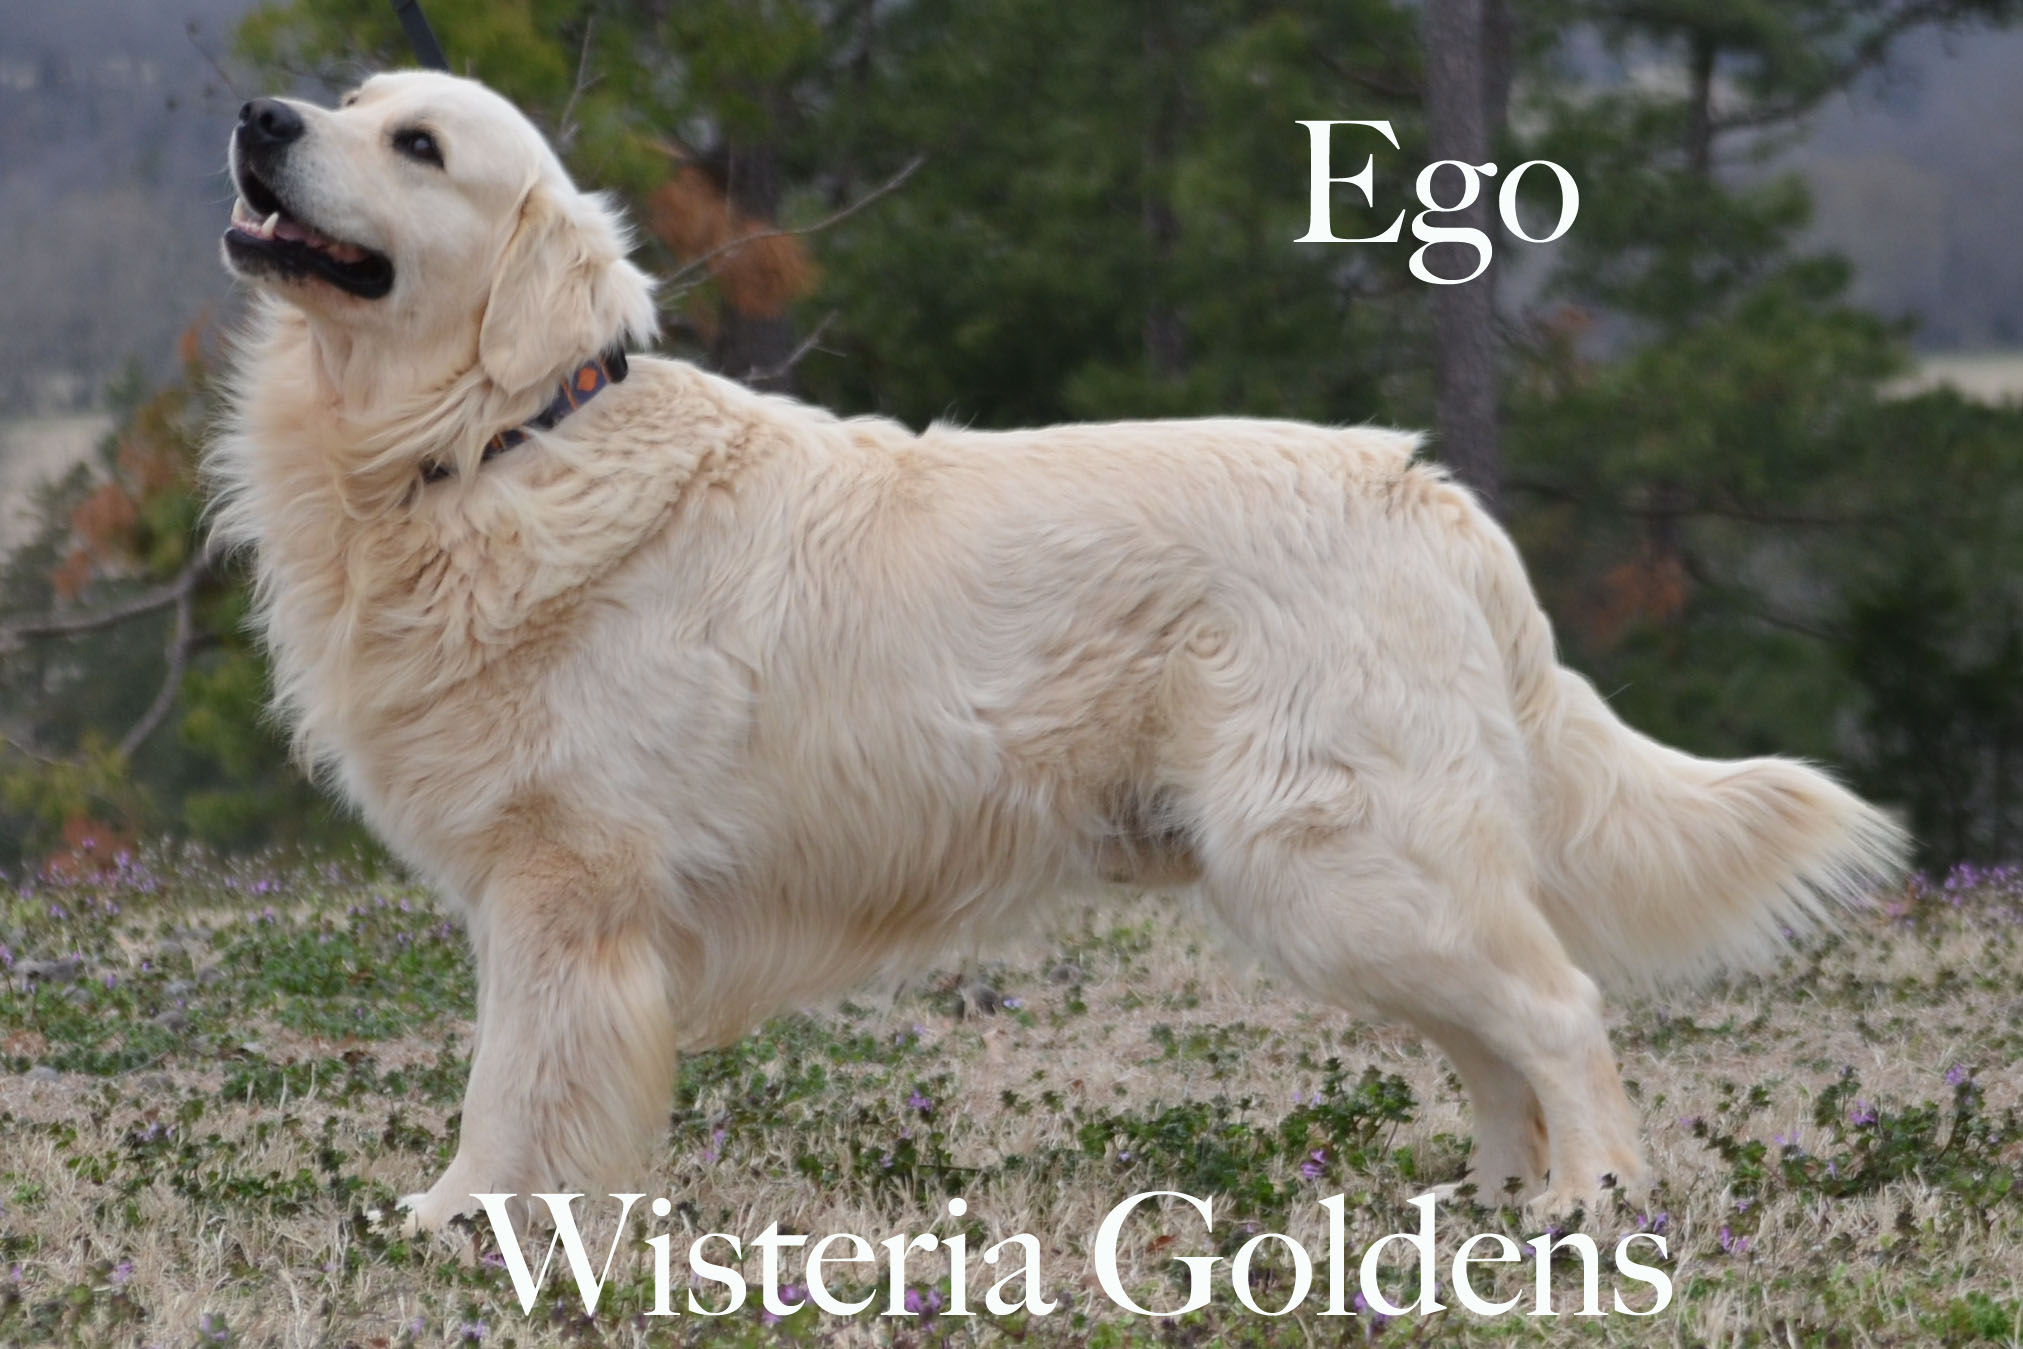 Ego_0100-full-english-creme-golden-retrievers-wisteria-goldens